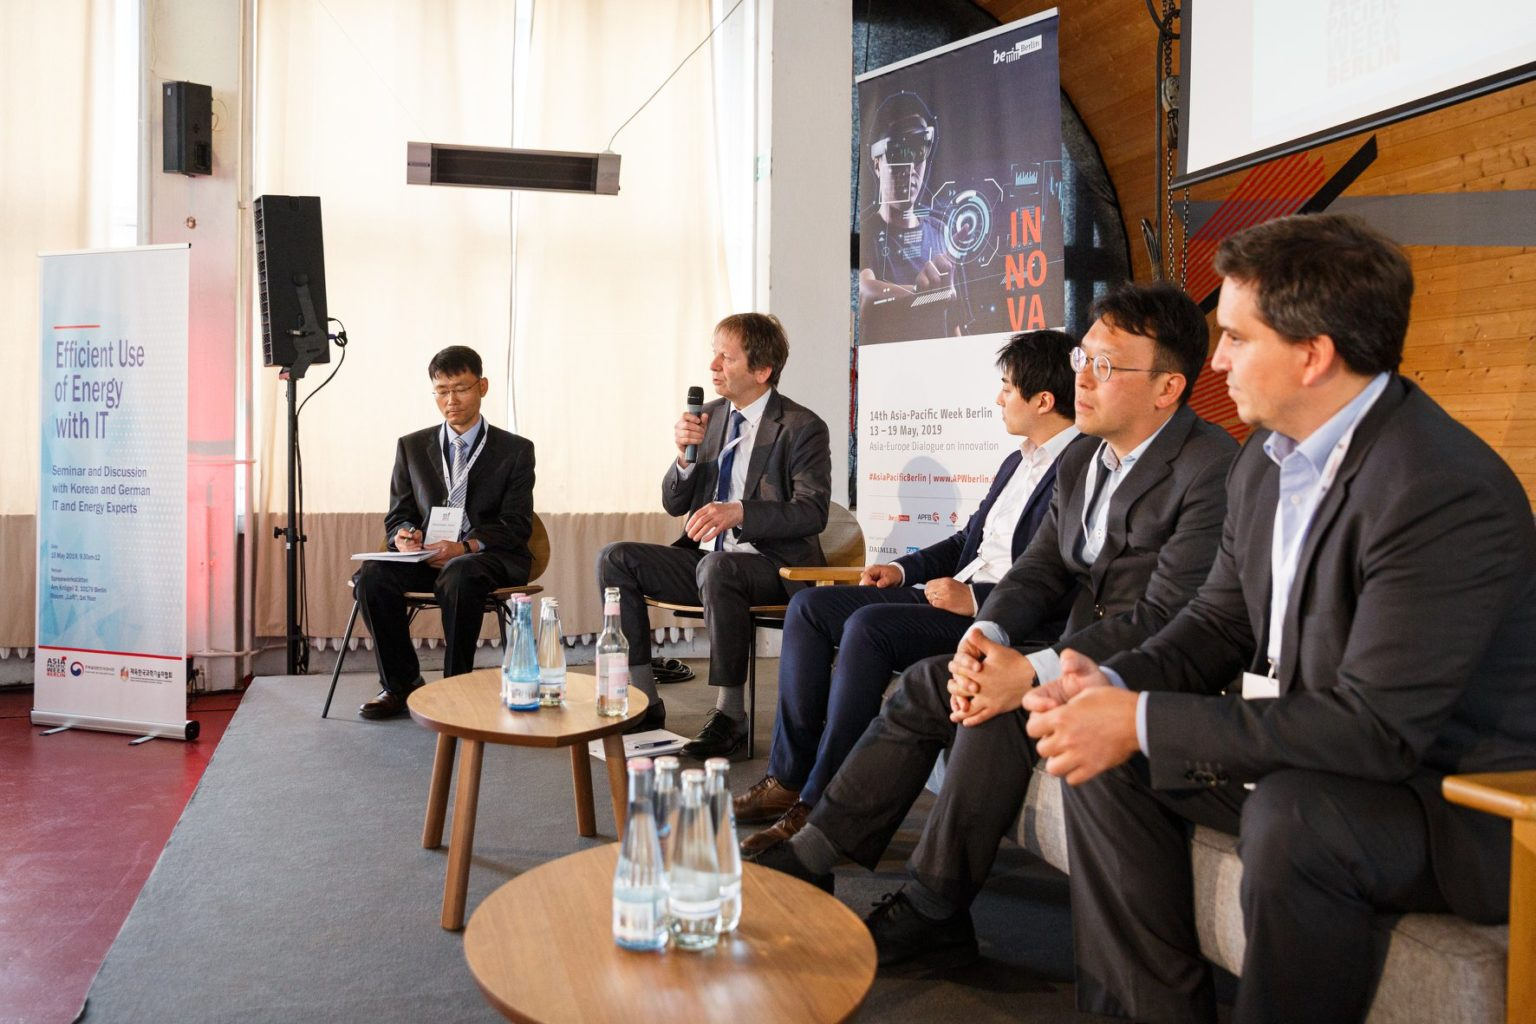 A Glimpse of the ASIABerlin Summit Program